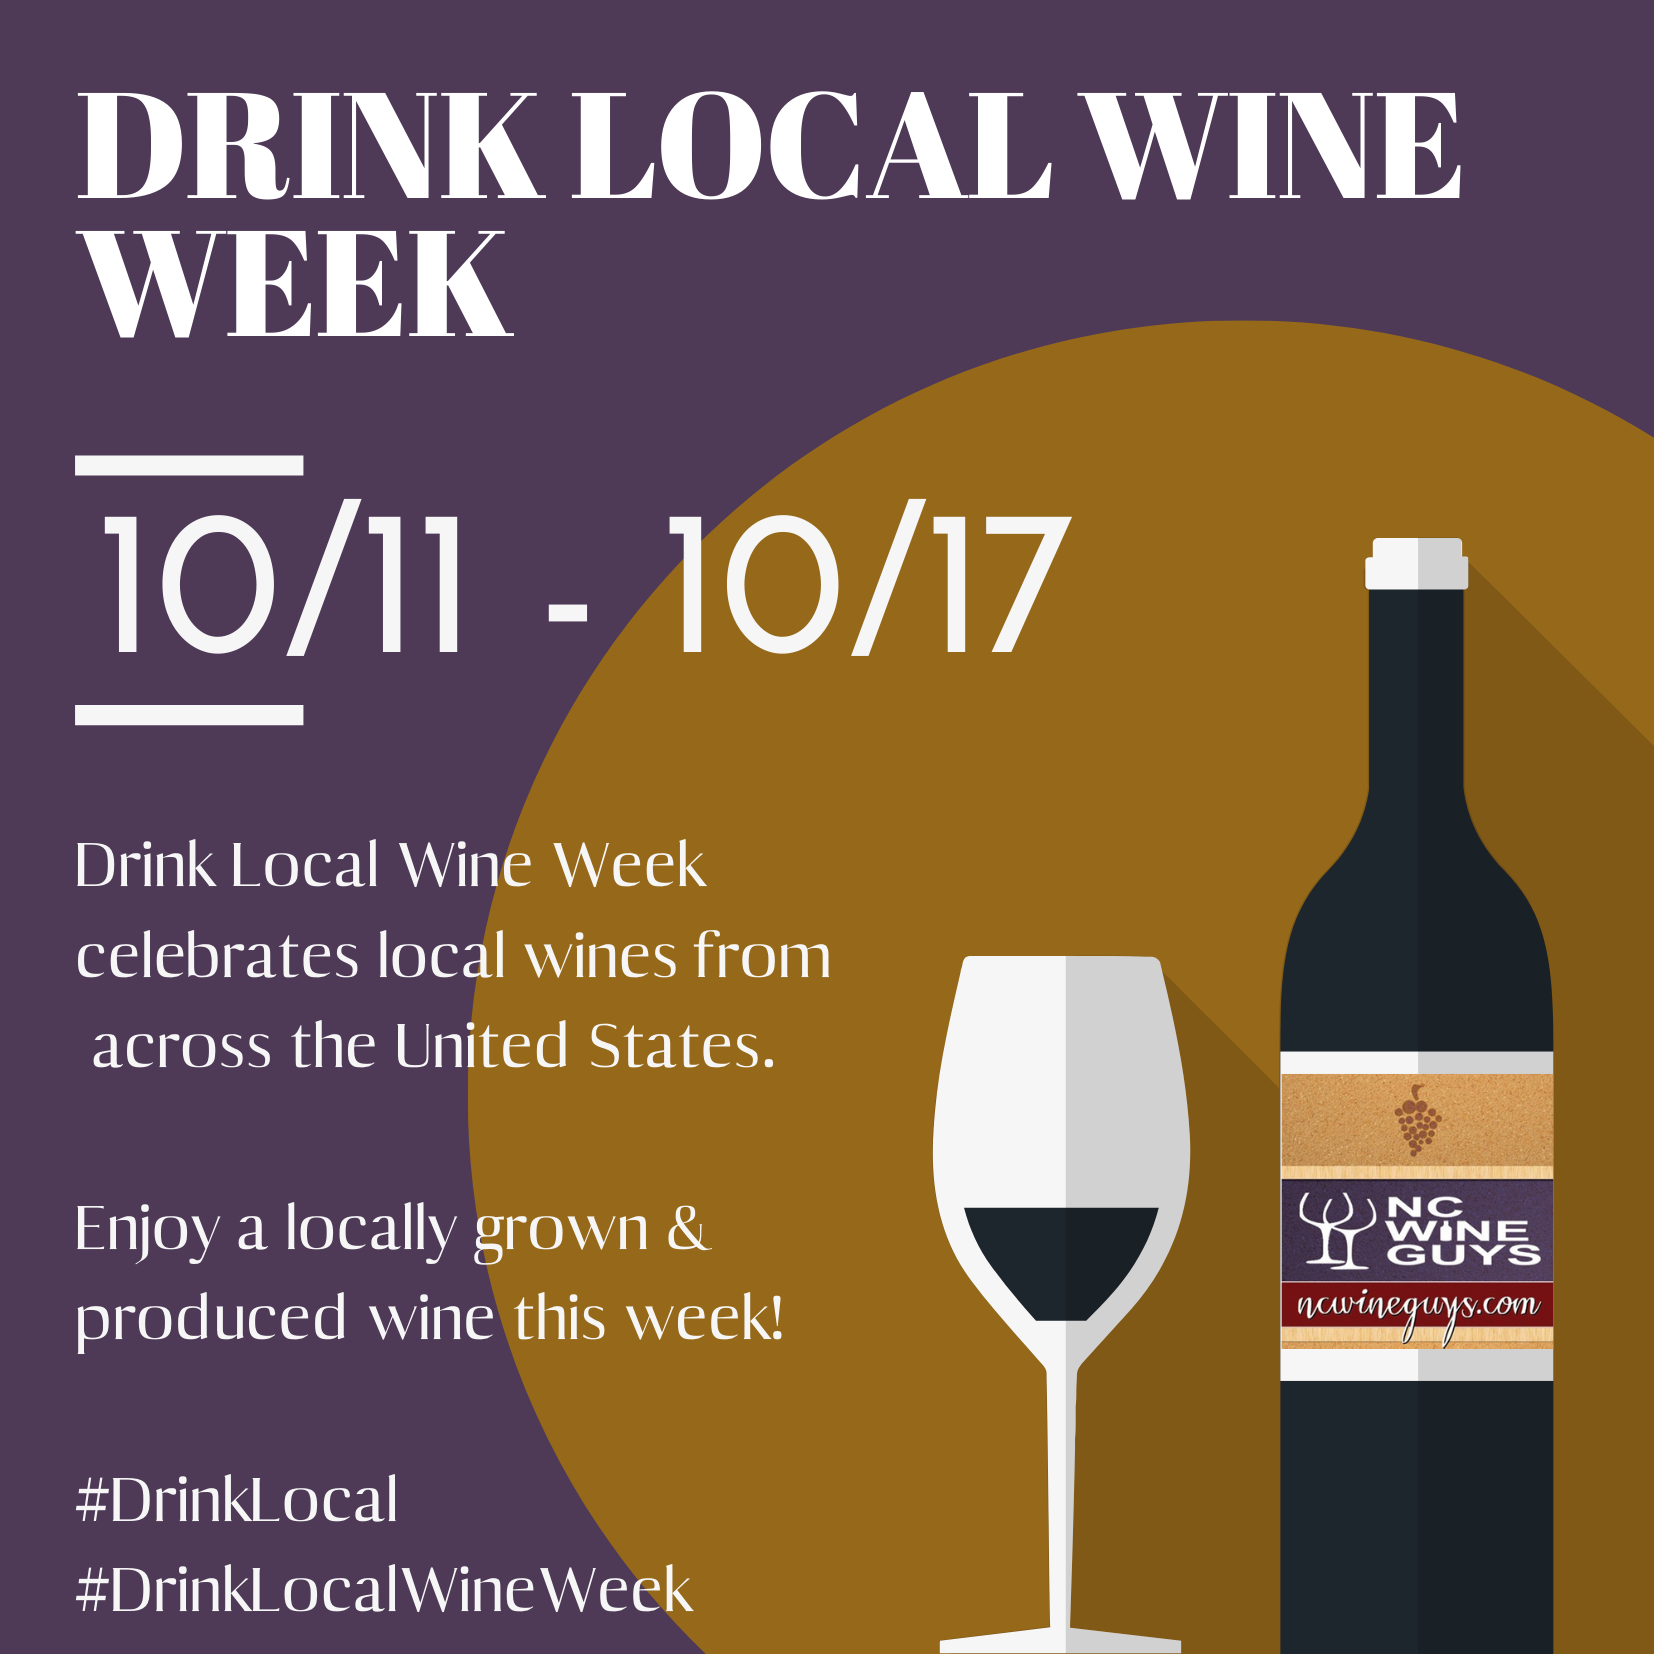 Drink Local Wine Week 2020